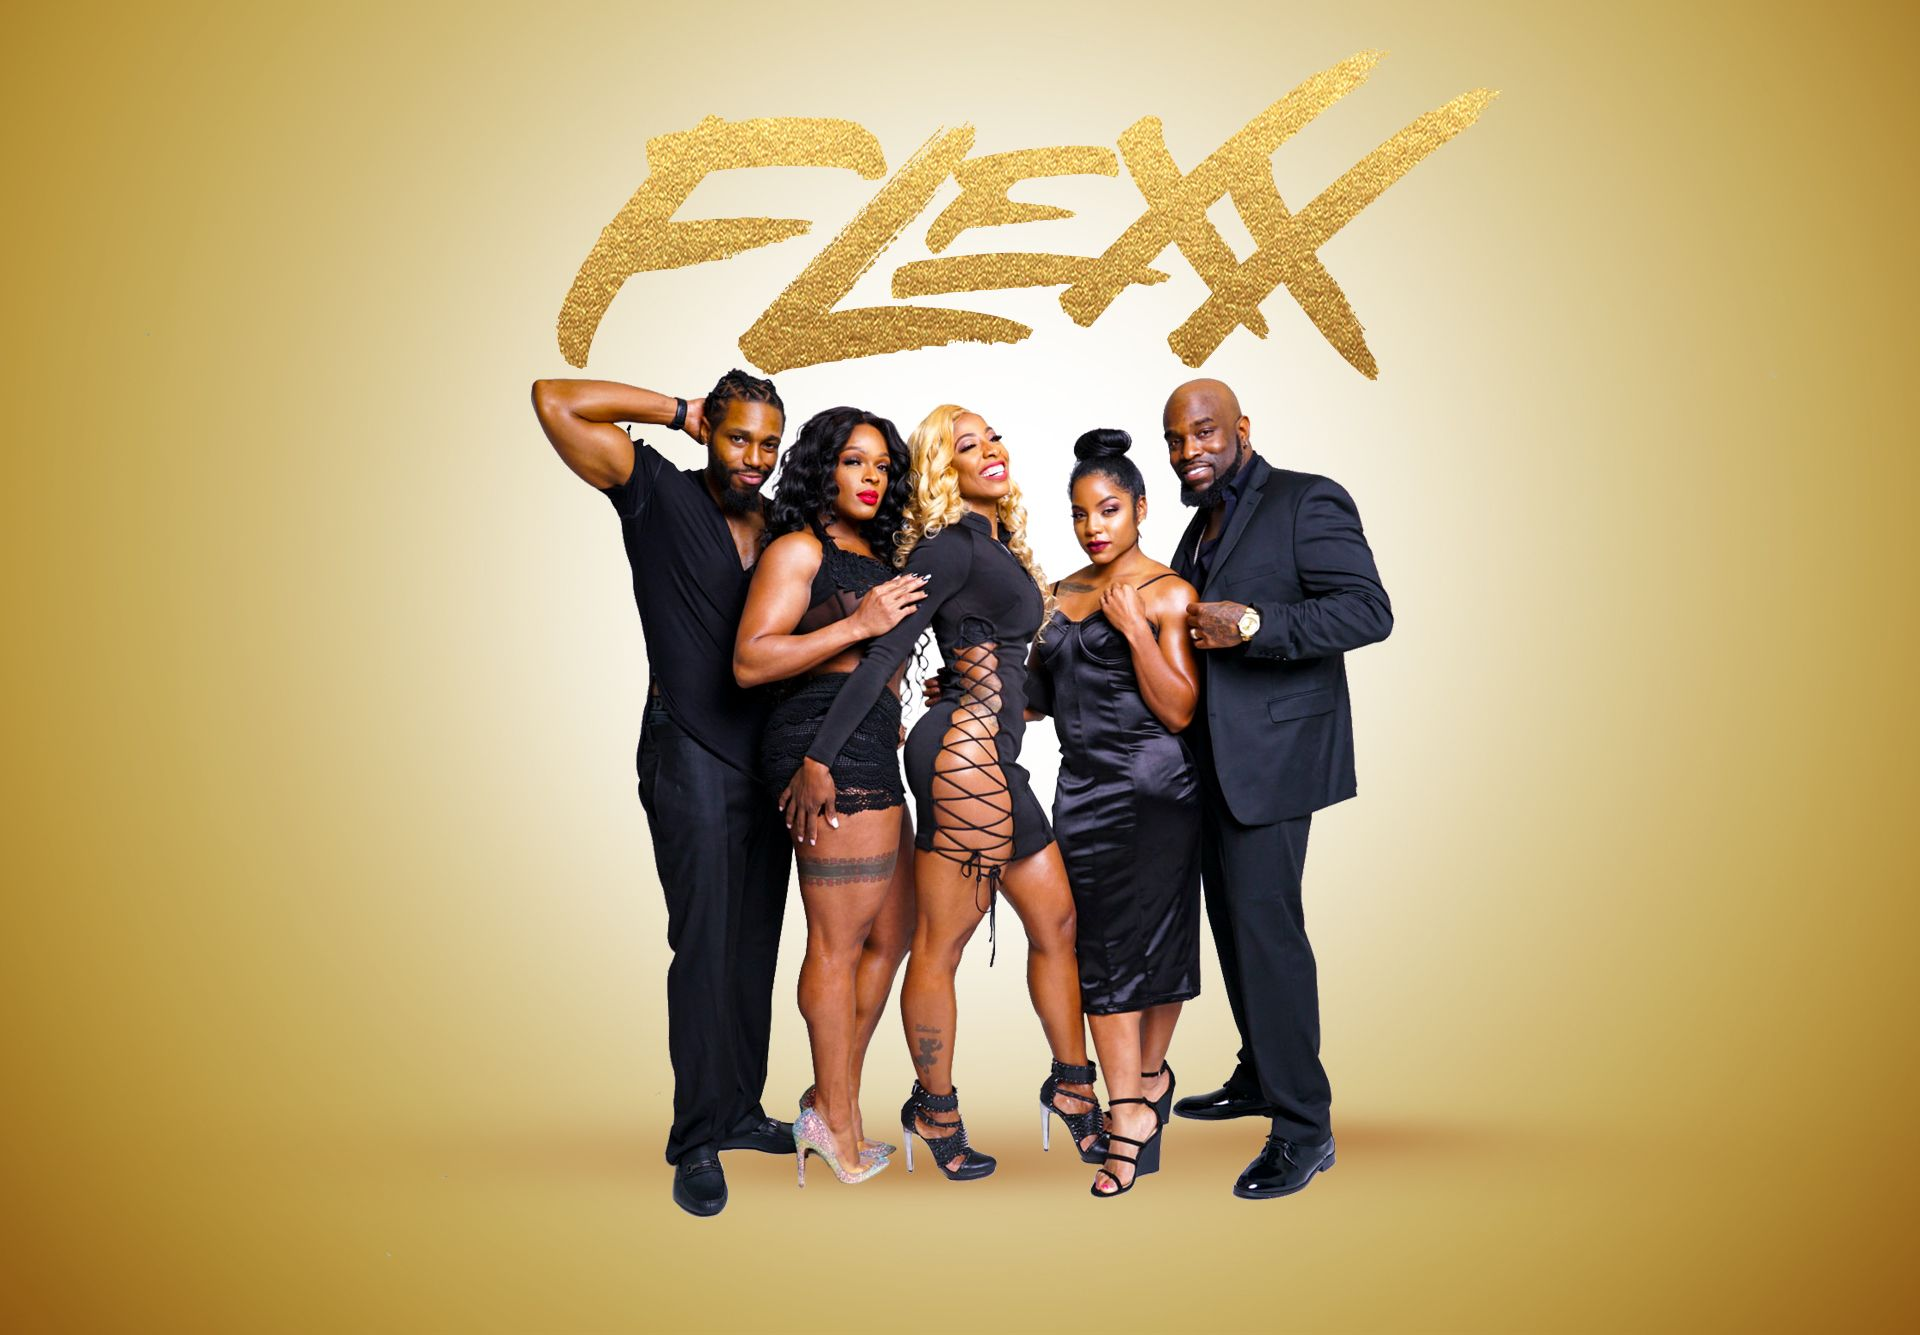 FLEXX Fresh New Reality TV Show Coming to Amazon Prime Summer 2019